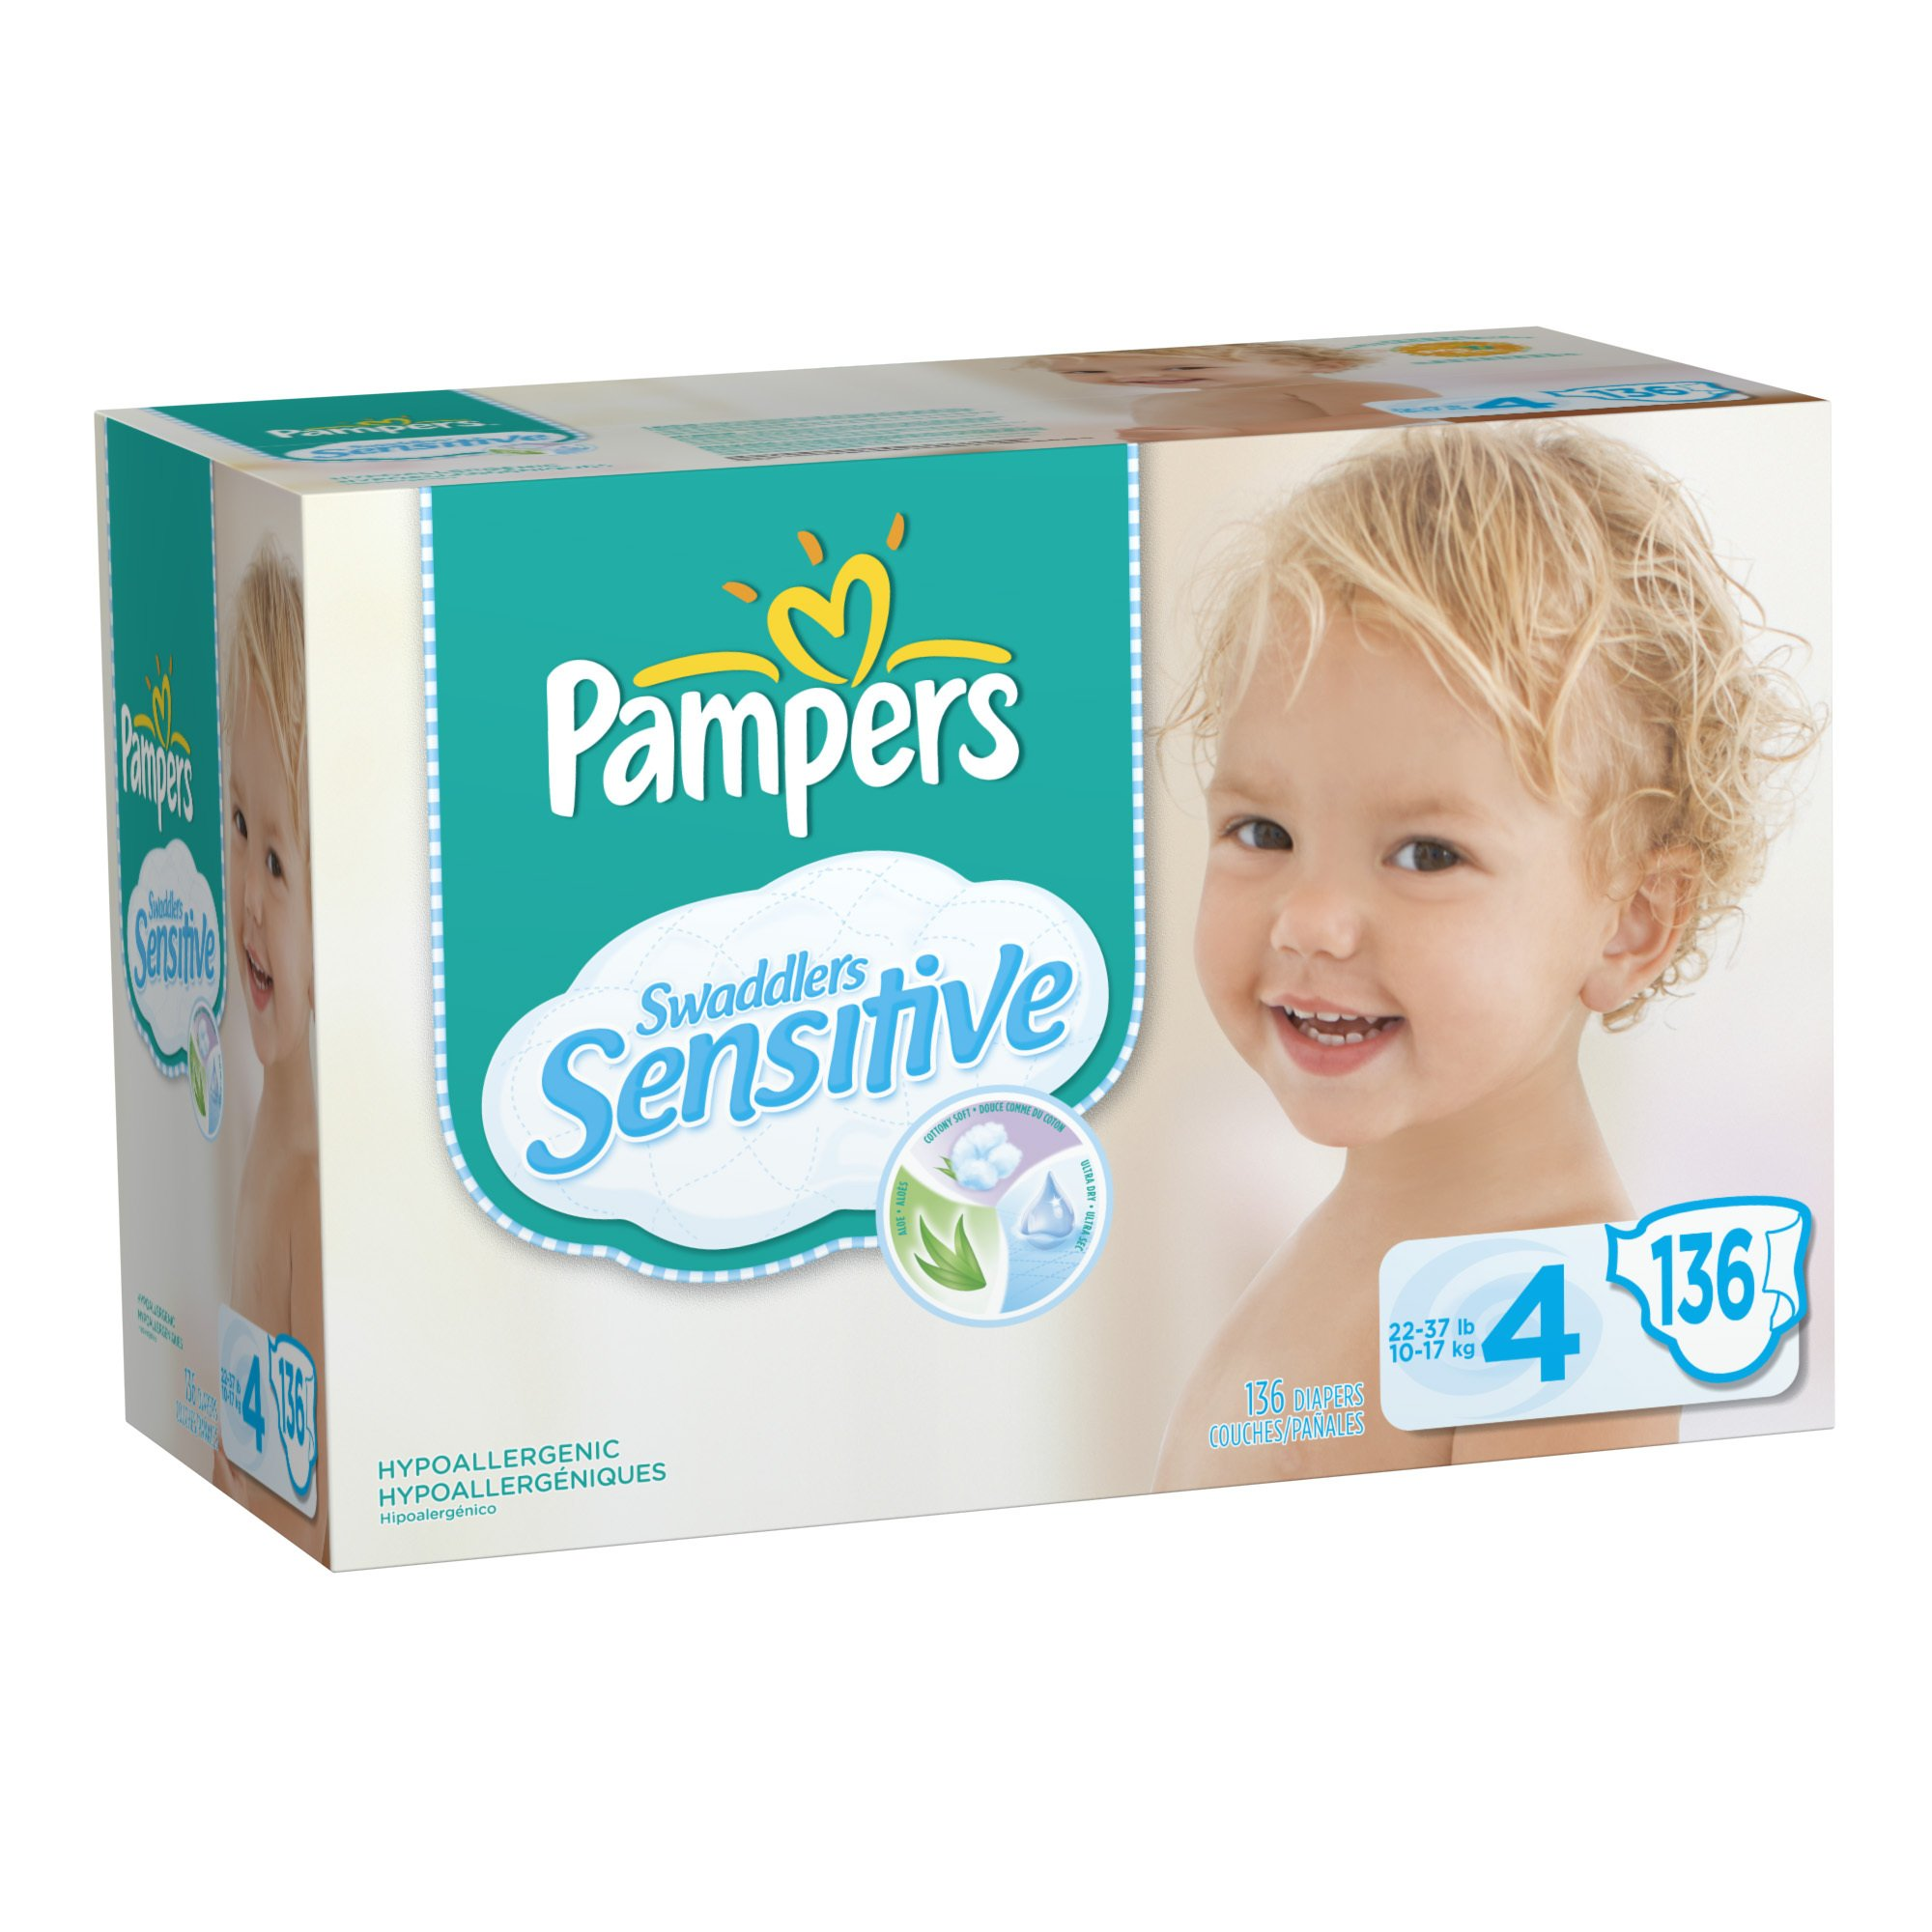 Pampers Swaddlers Sensitive Diapers, 136 Count